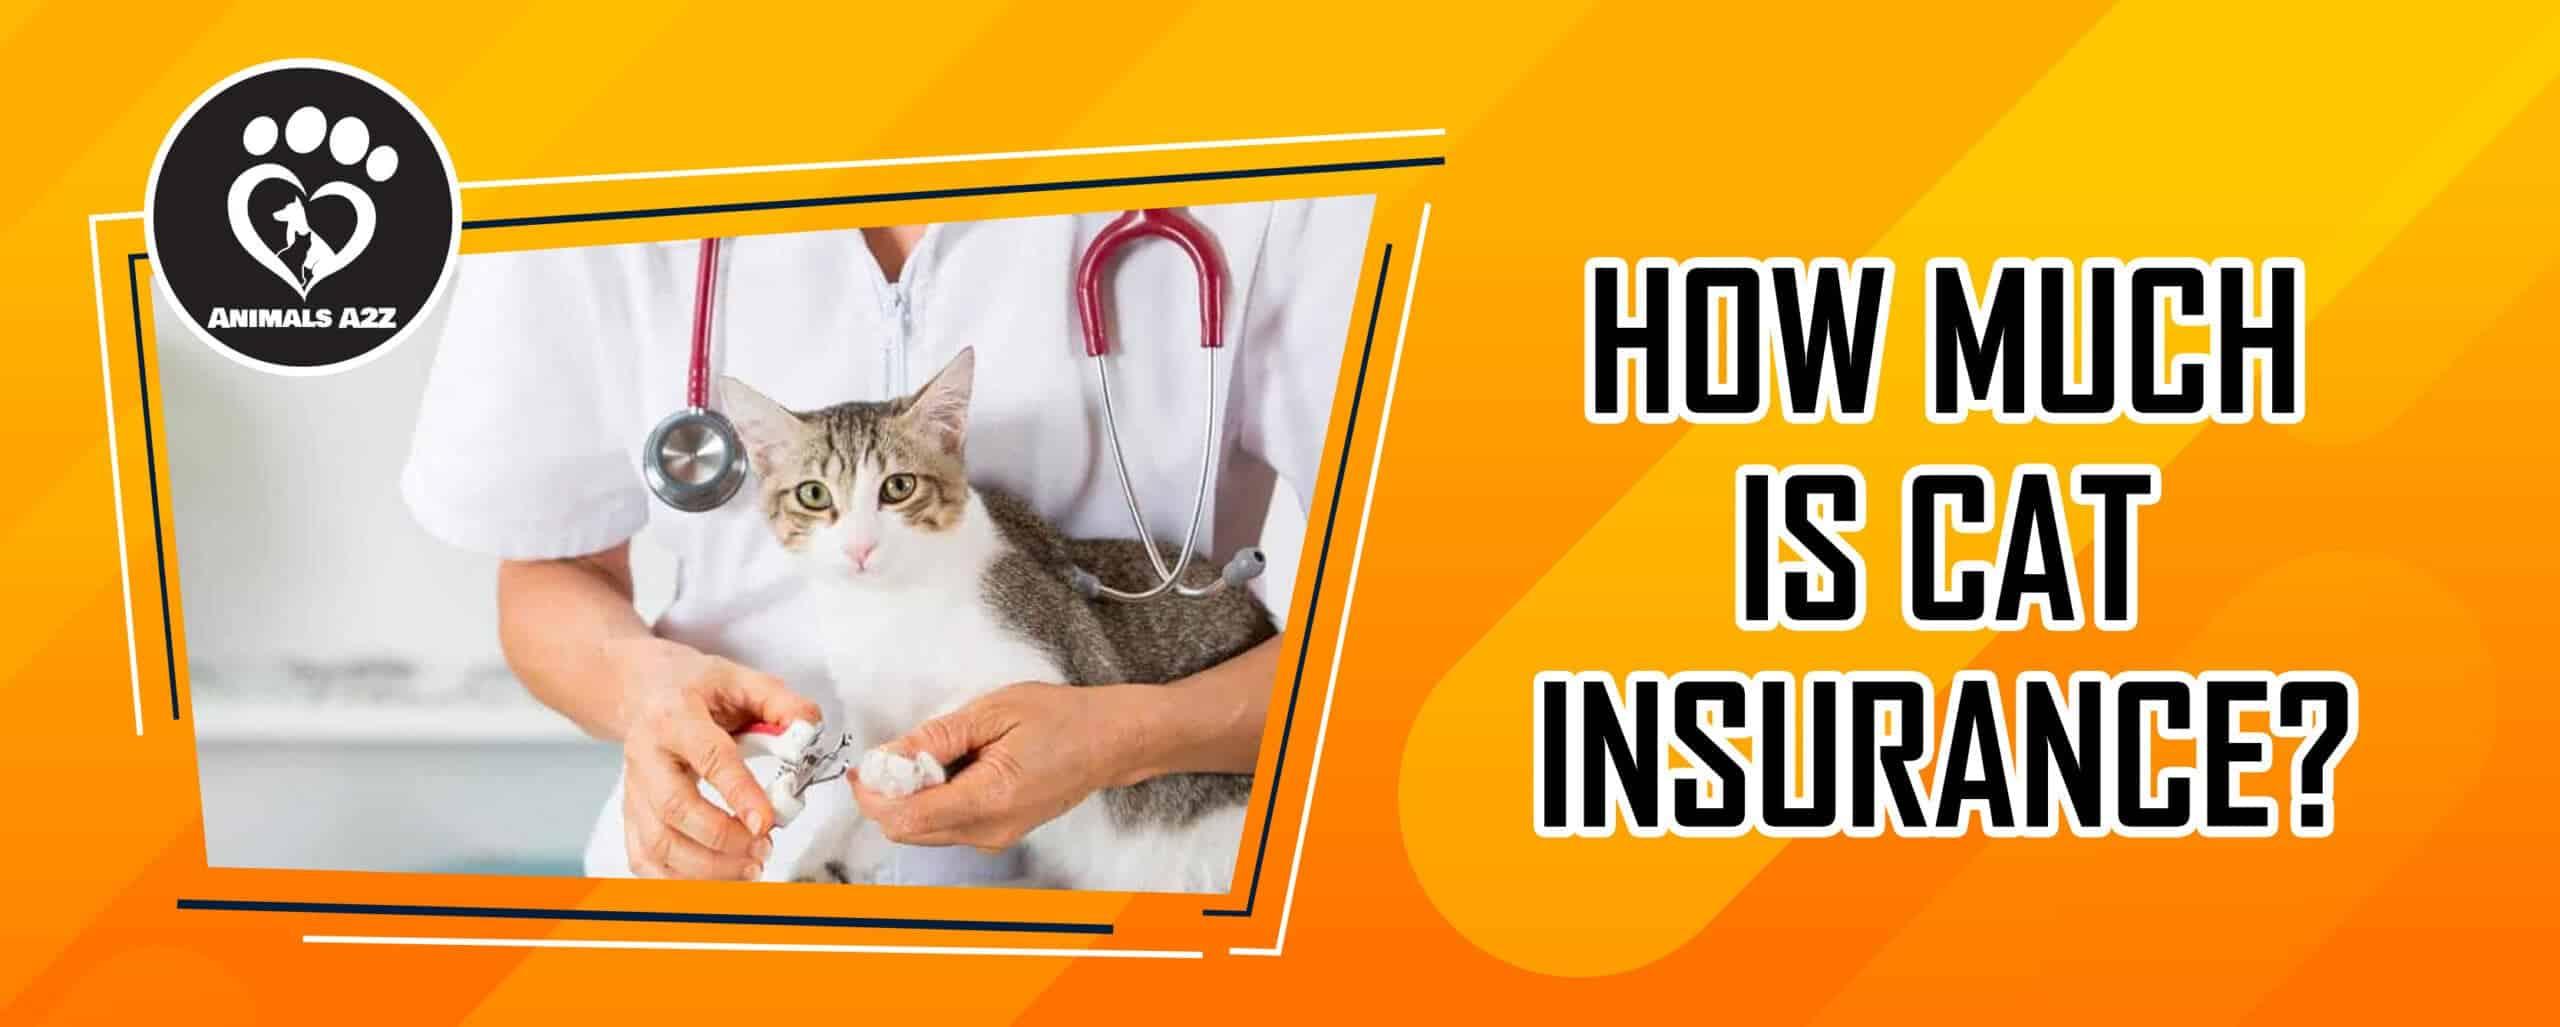 How much is cat insurance